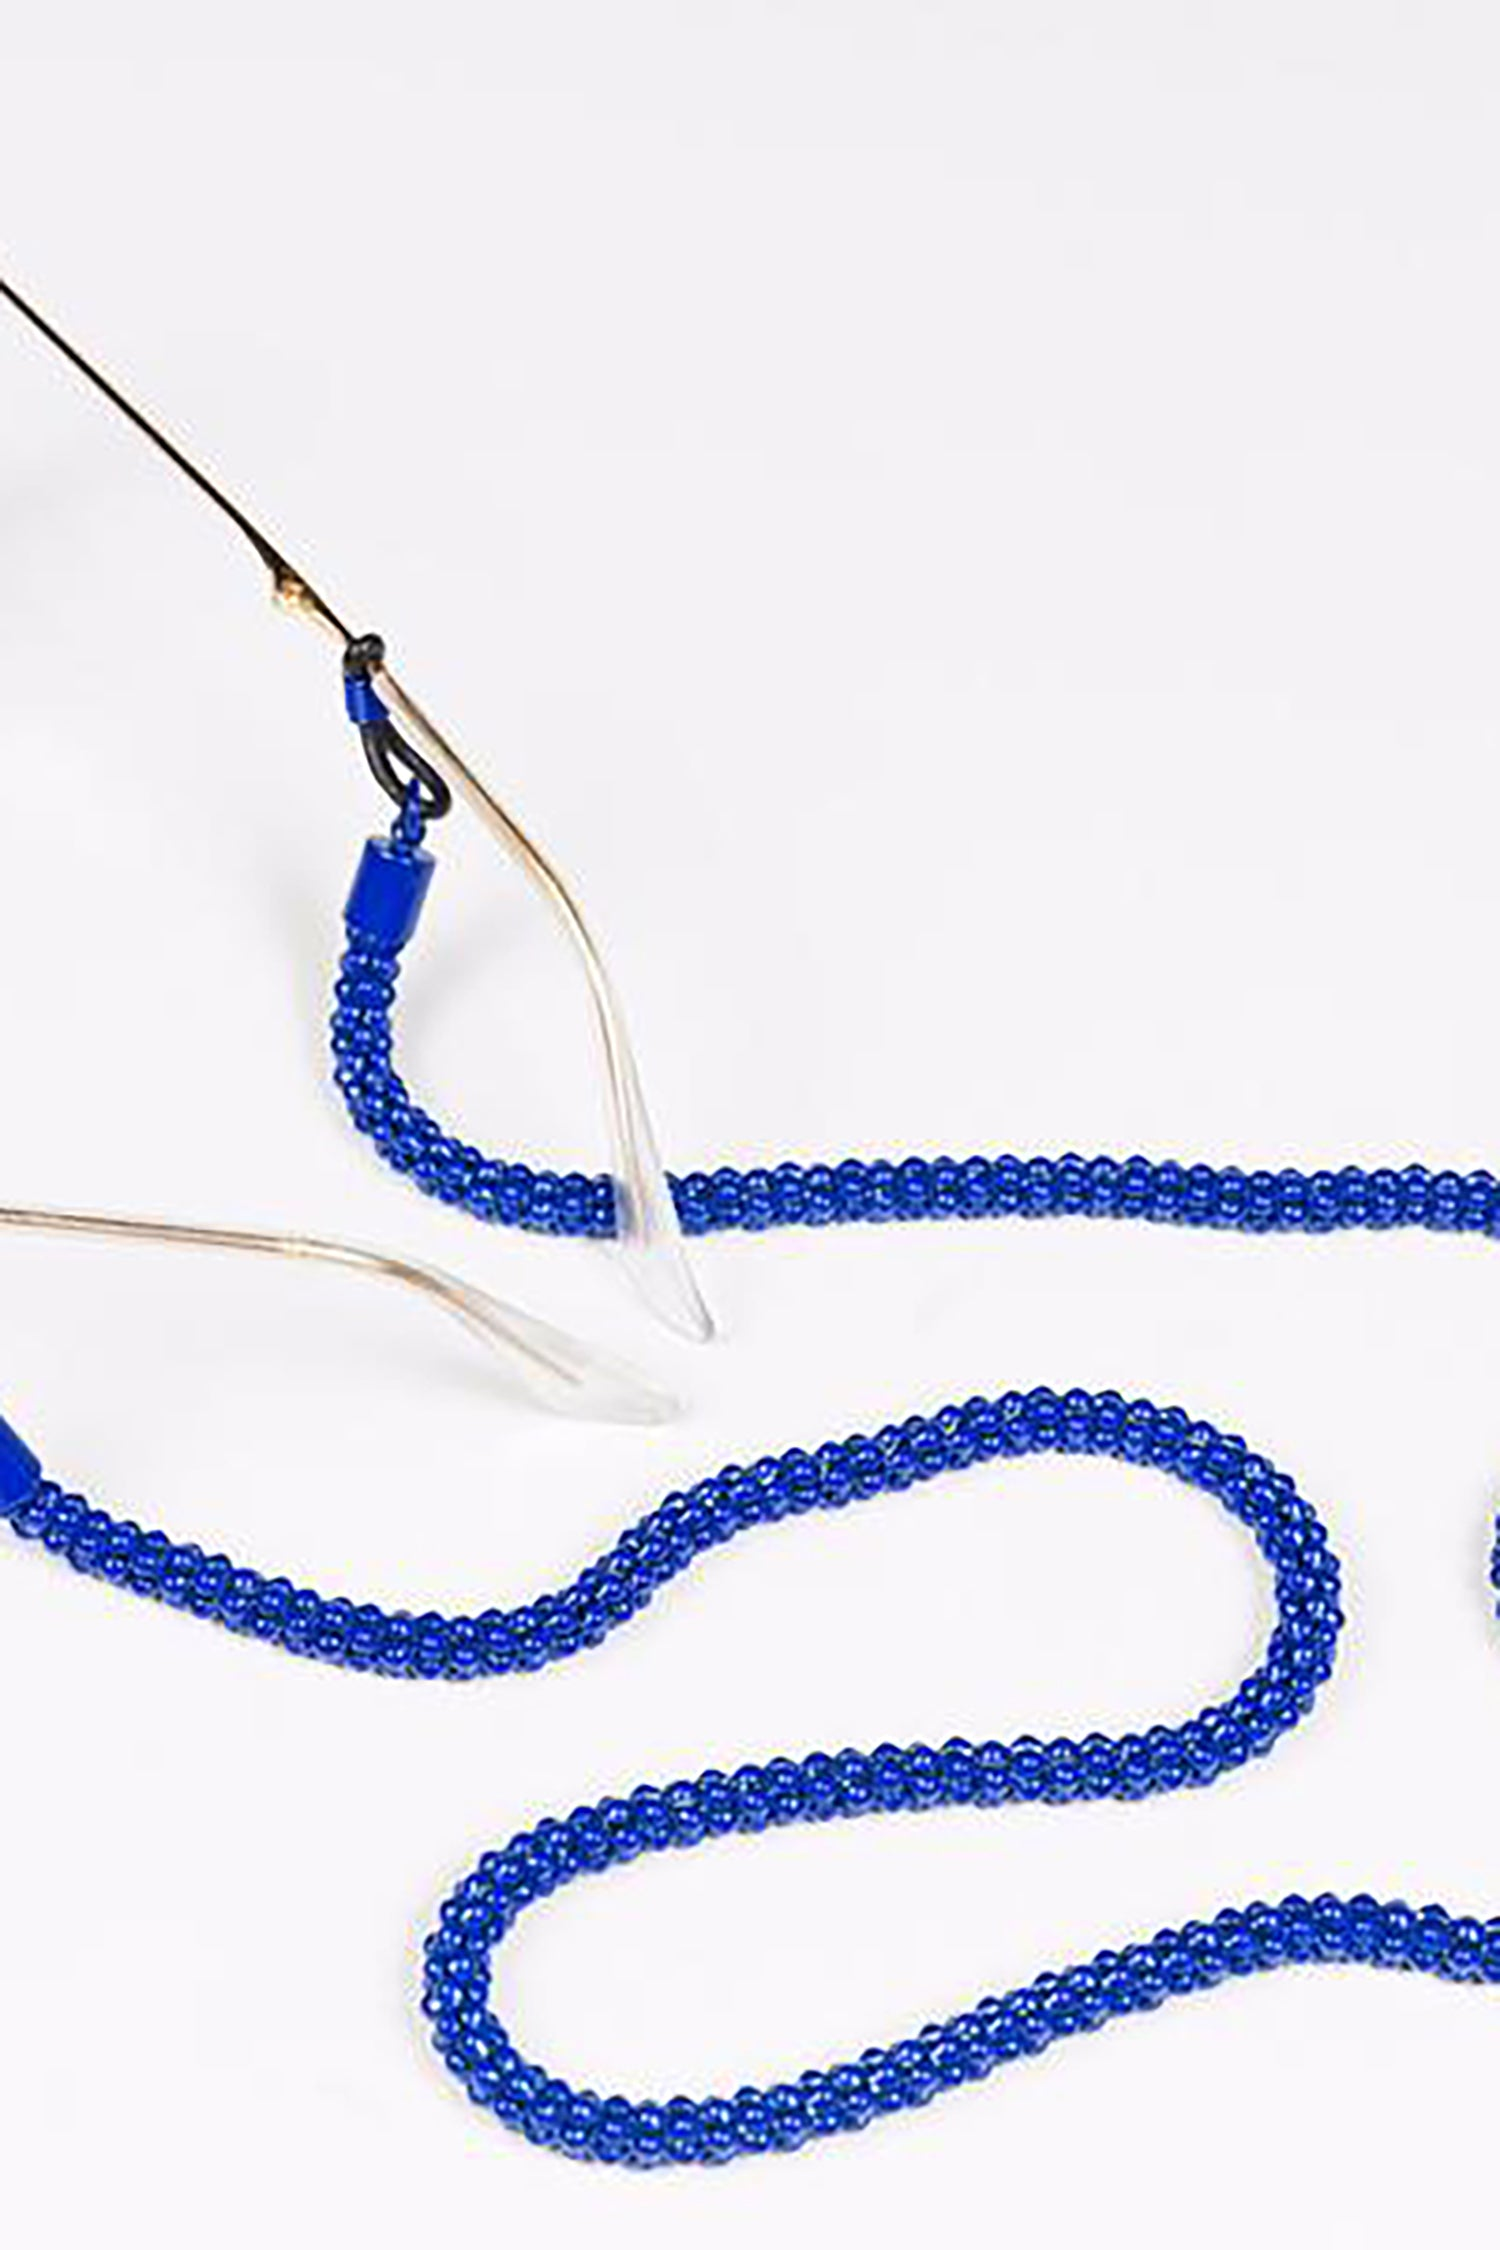 Mr Strappy Chain - Blue